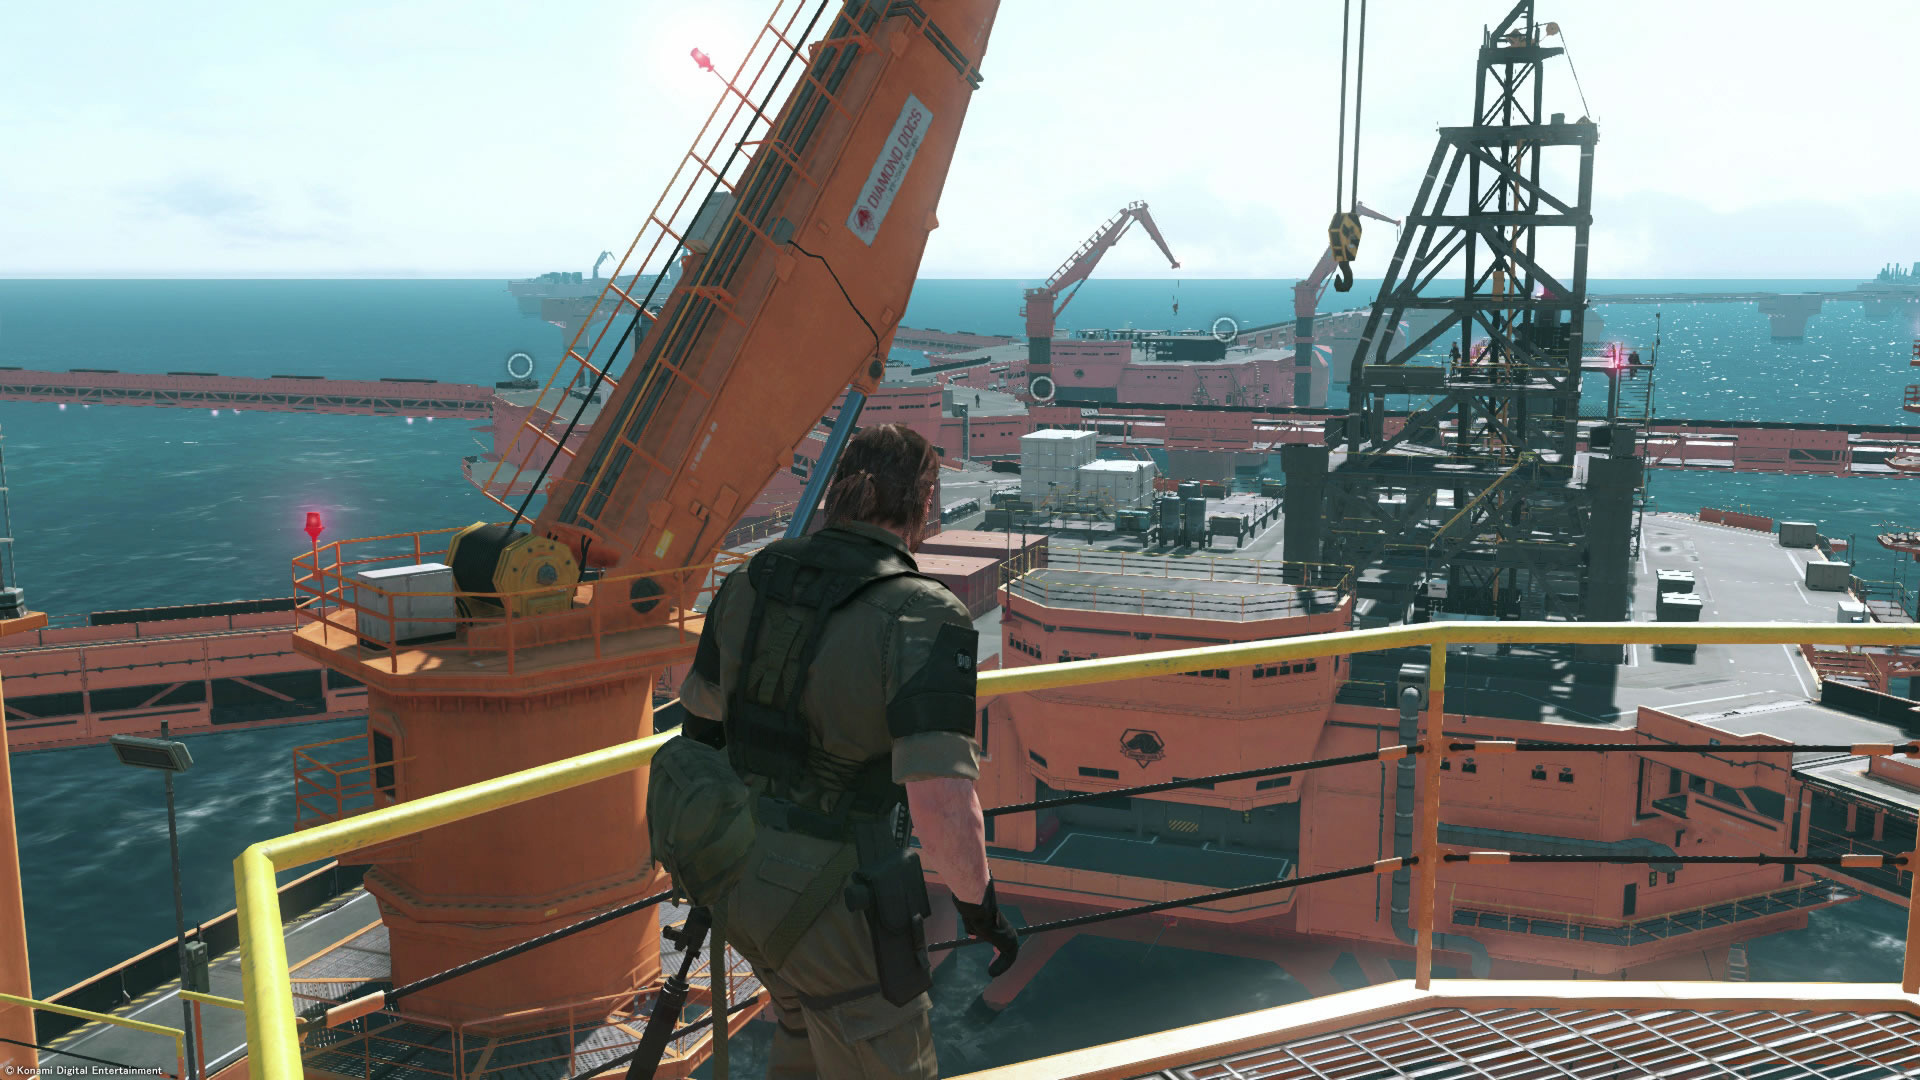 Metal-Gear-Solid-V-The-Phantom-Pain-Screenshot-Gamescom-2015-1